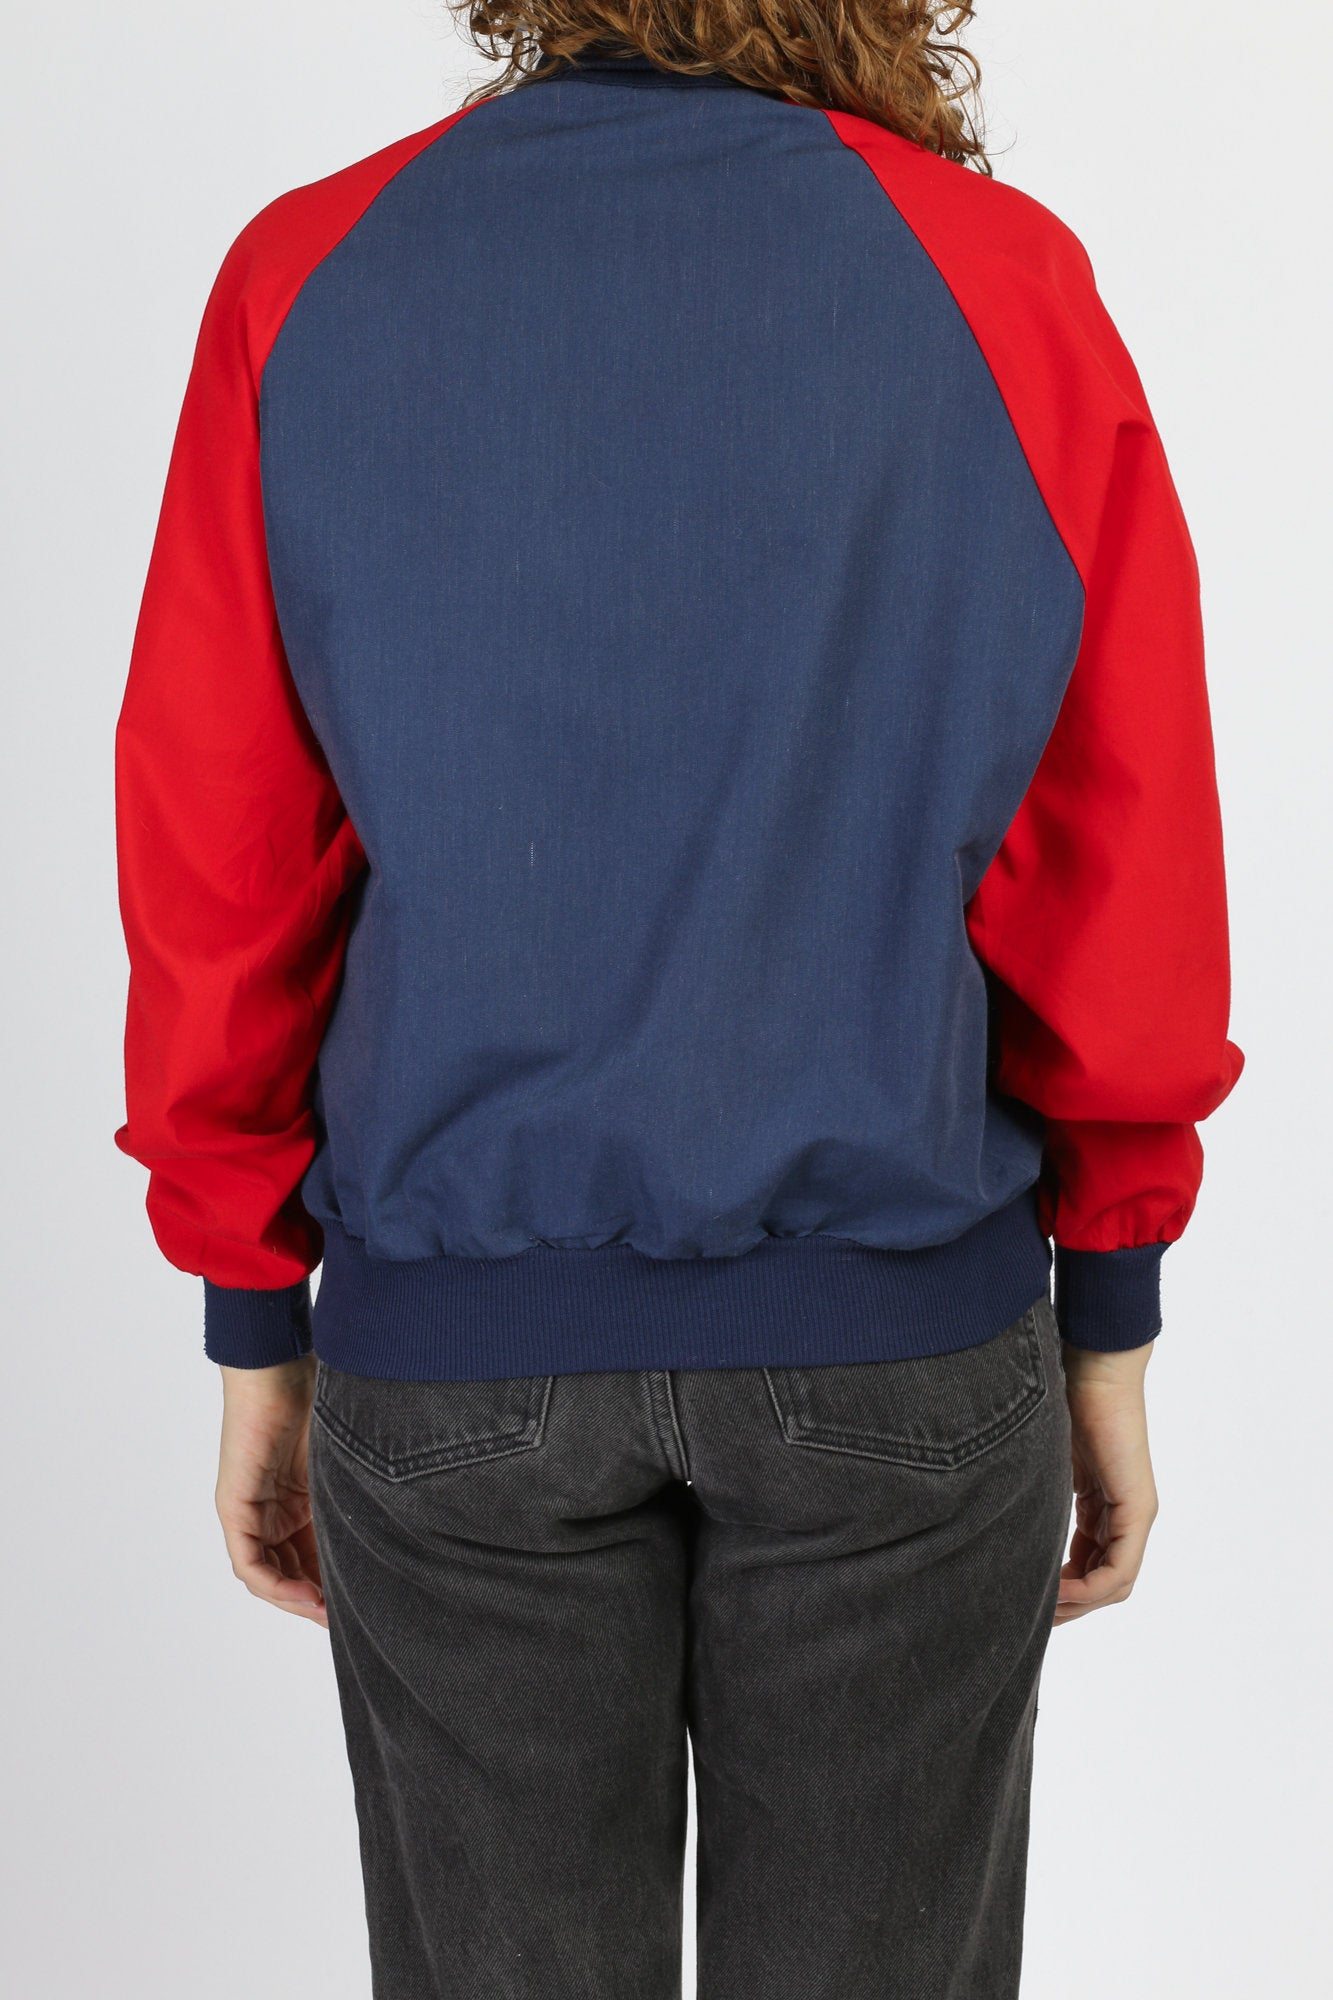 80s Color Block Pullover Track Jacket - Men's Medium